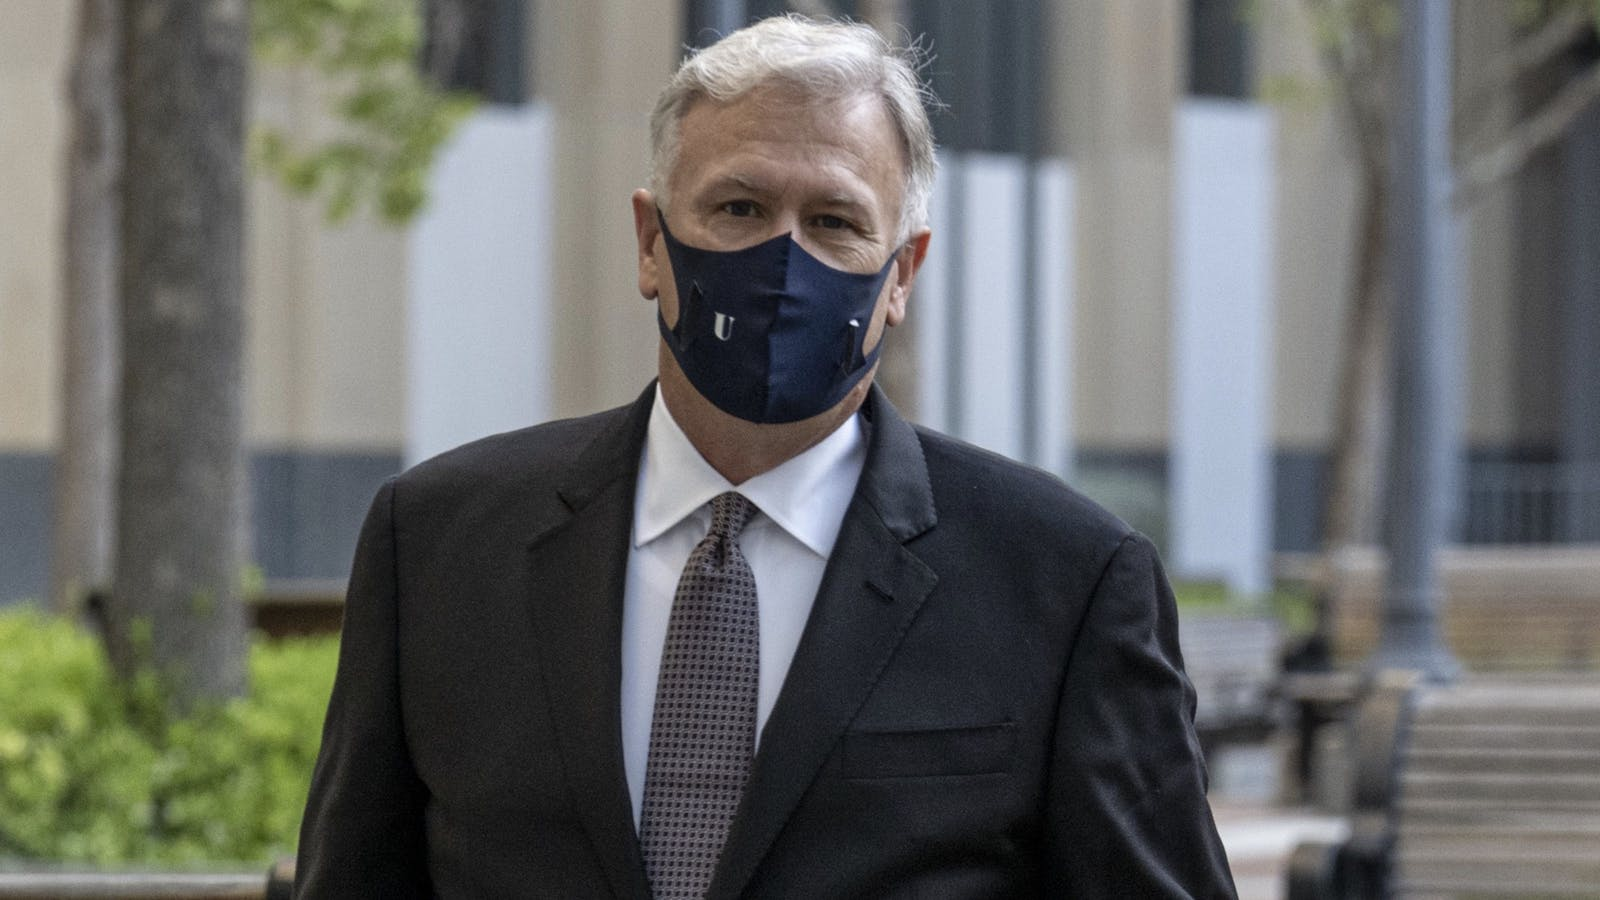 Phil Schiller arriving at court last week. Photo by Bloomberg.